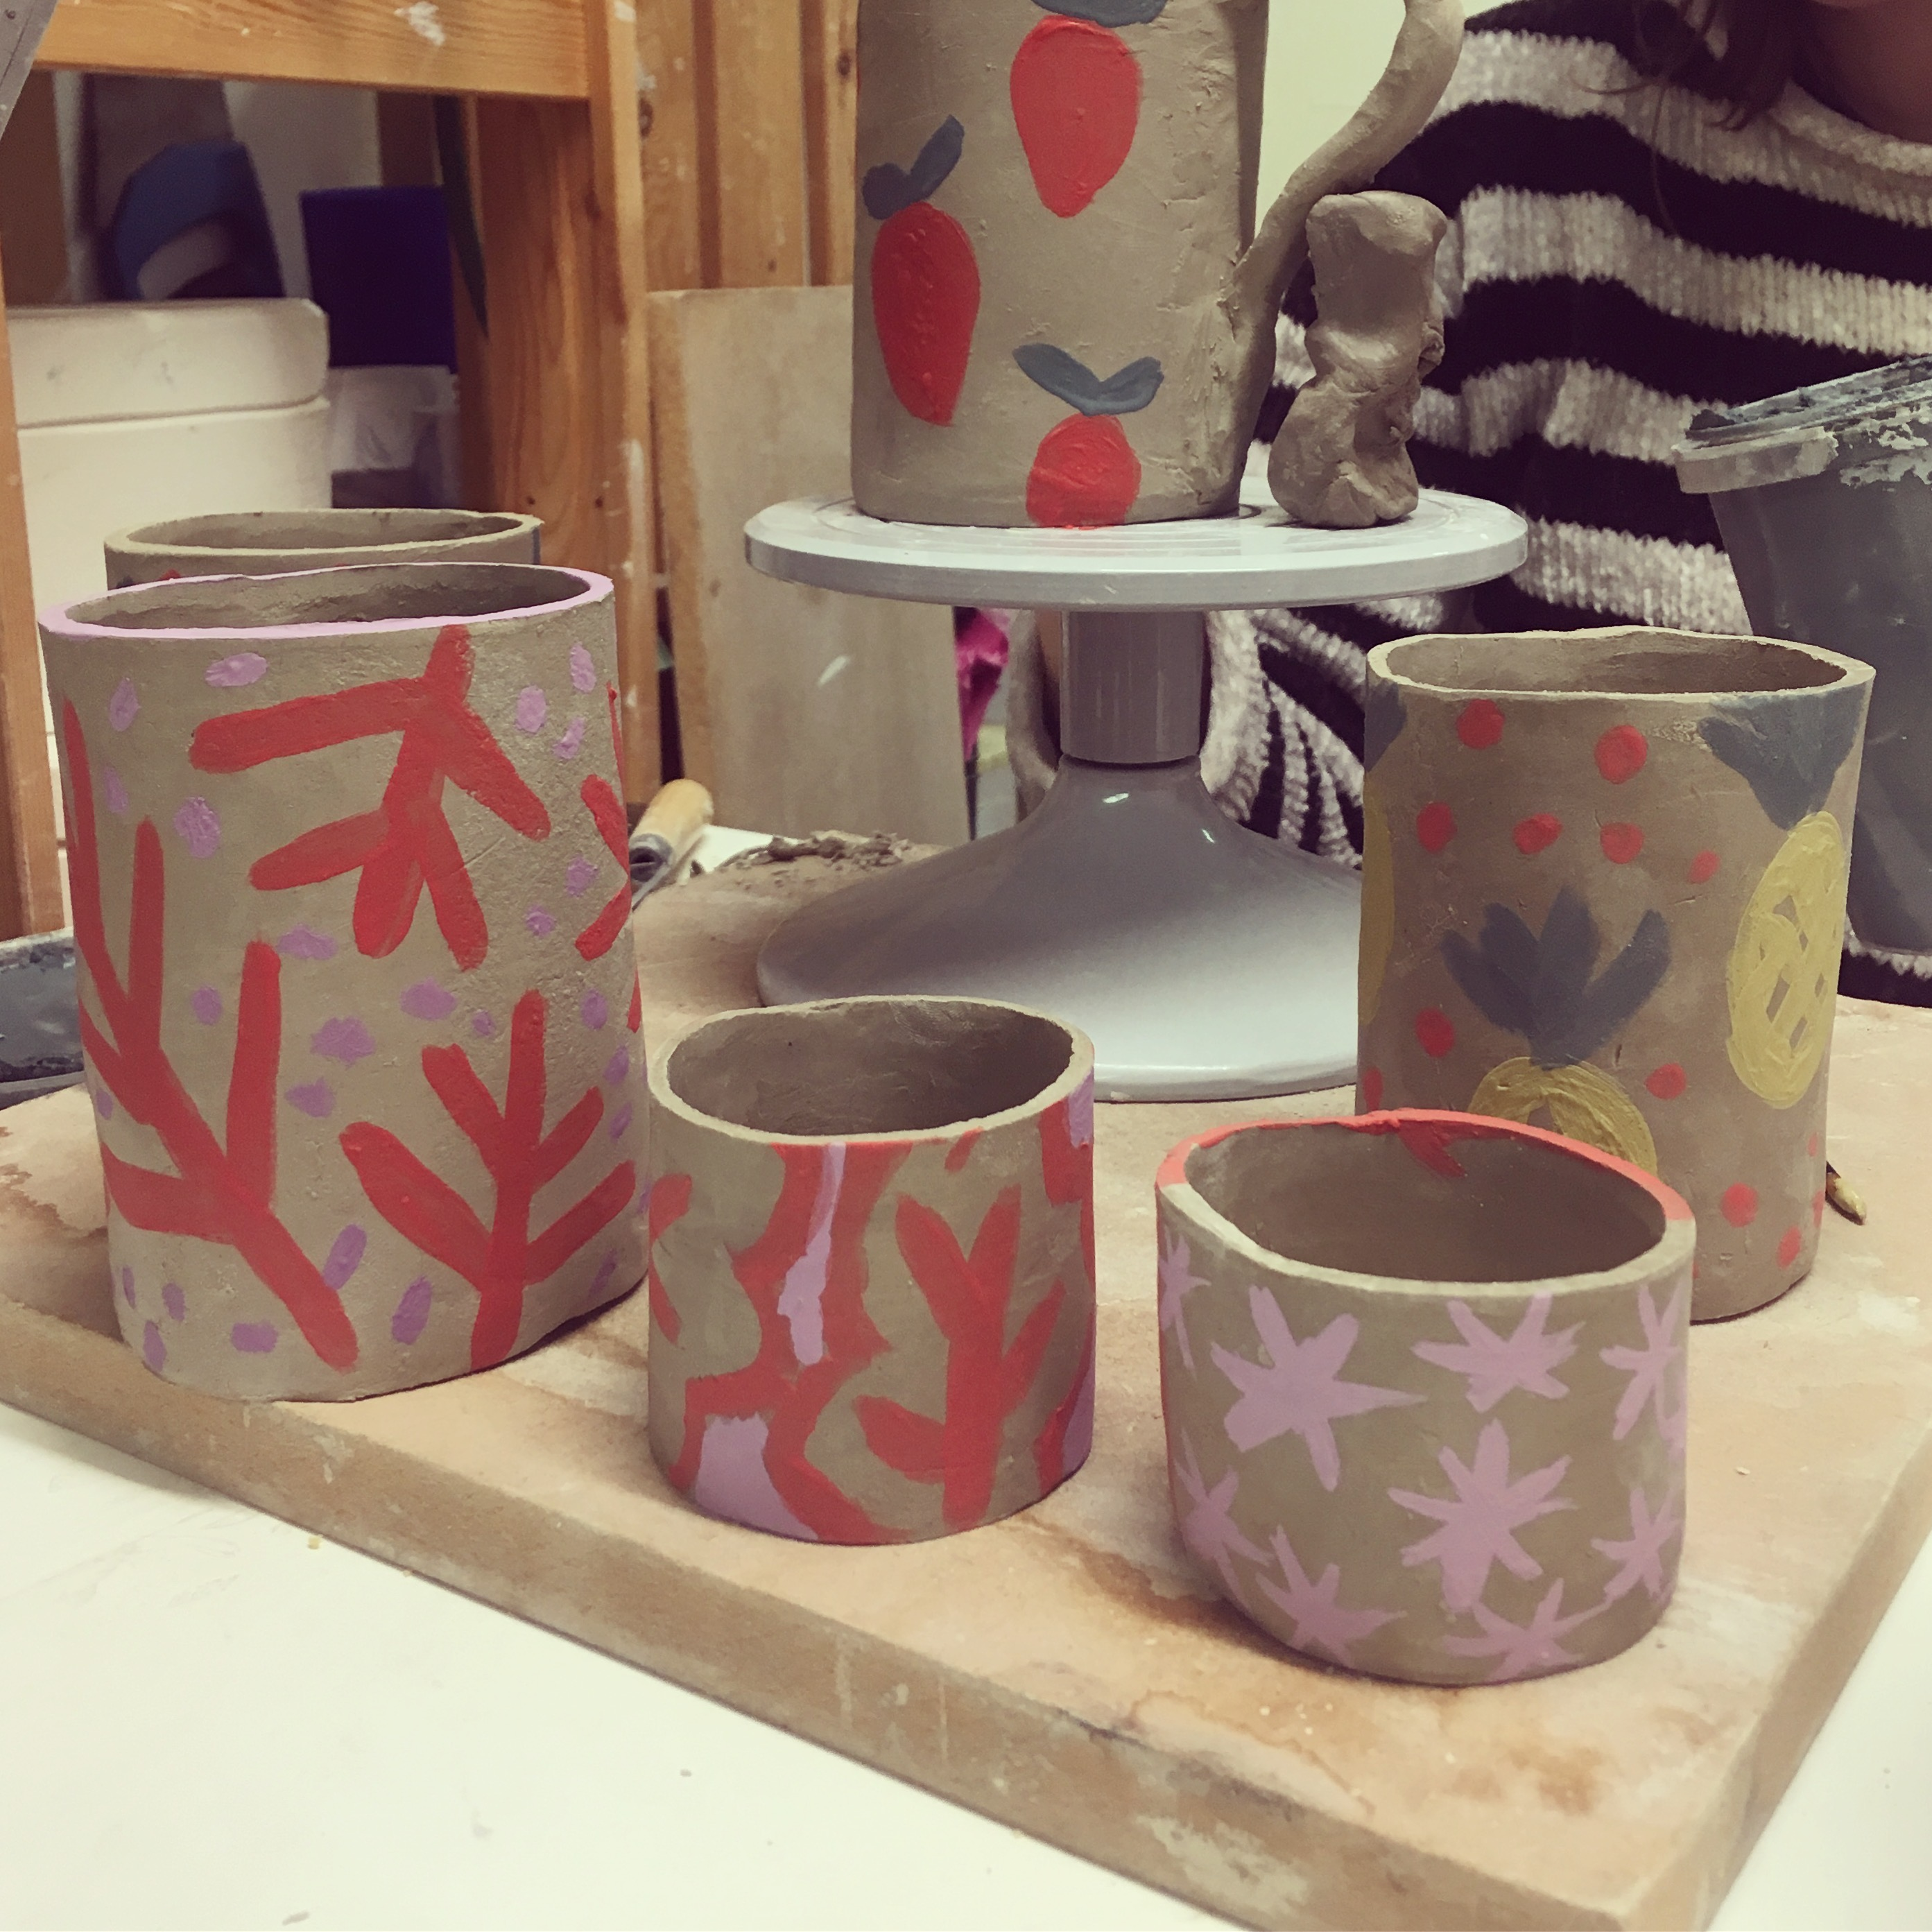 Pottery mug making in a craft beer bar